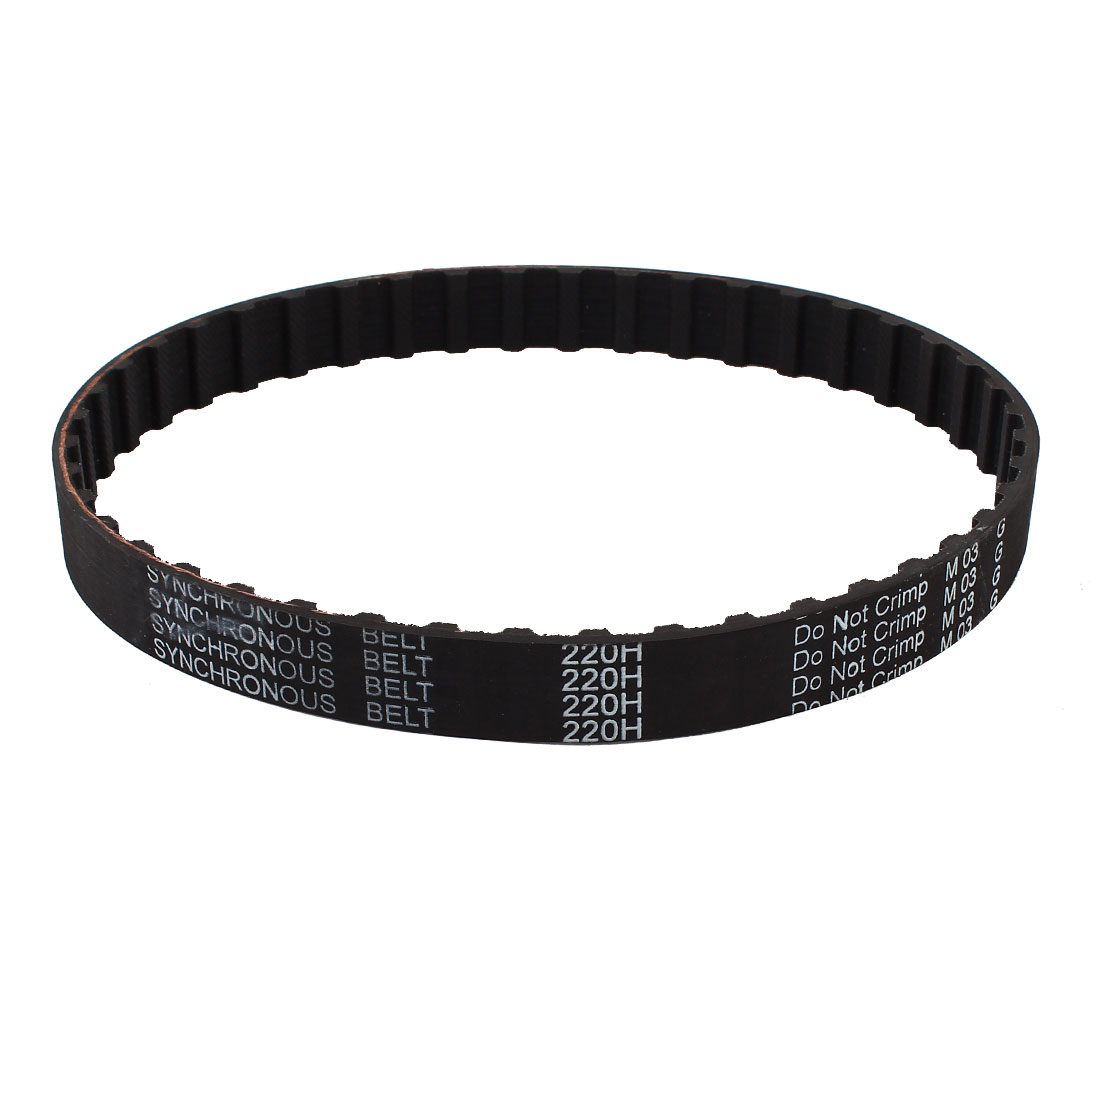 200H 075 40 Teeth 12.7mm Pitch 19.1mm Width Industrial Timing Belt Black